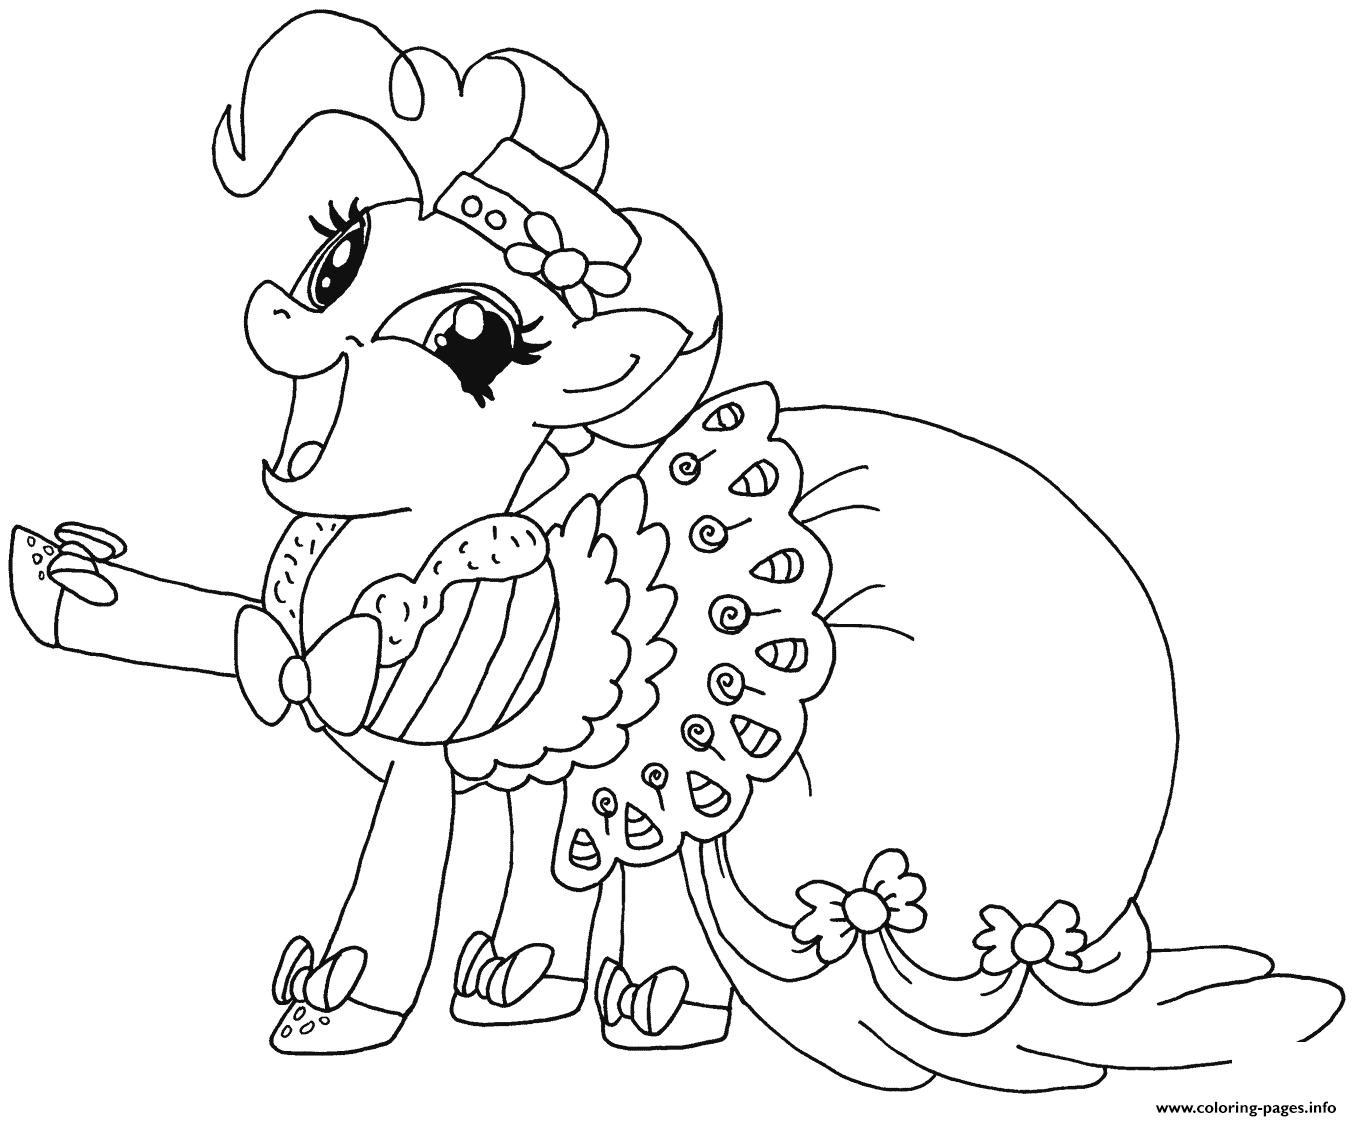 Print Happy Pinkie Pie My Little Pony Coloring Pages My Little Pony Coloring My Little Pony Unicorn Horse Coloring Pages [ 1121 x 1352 Pixel ]